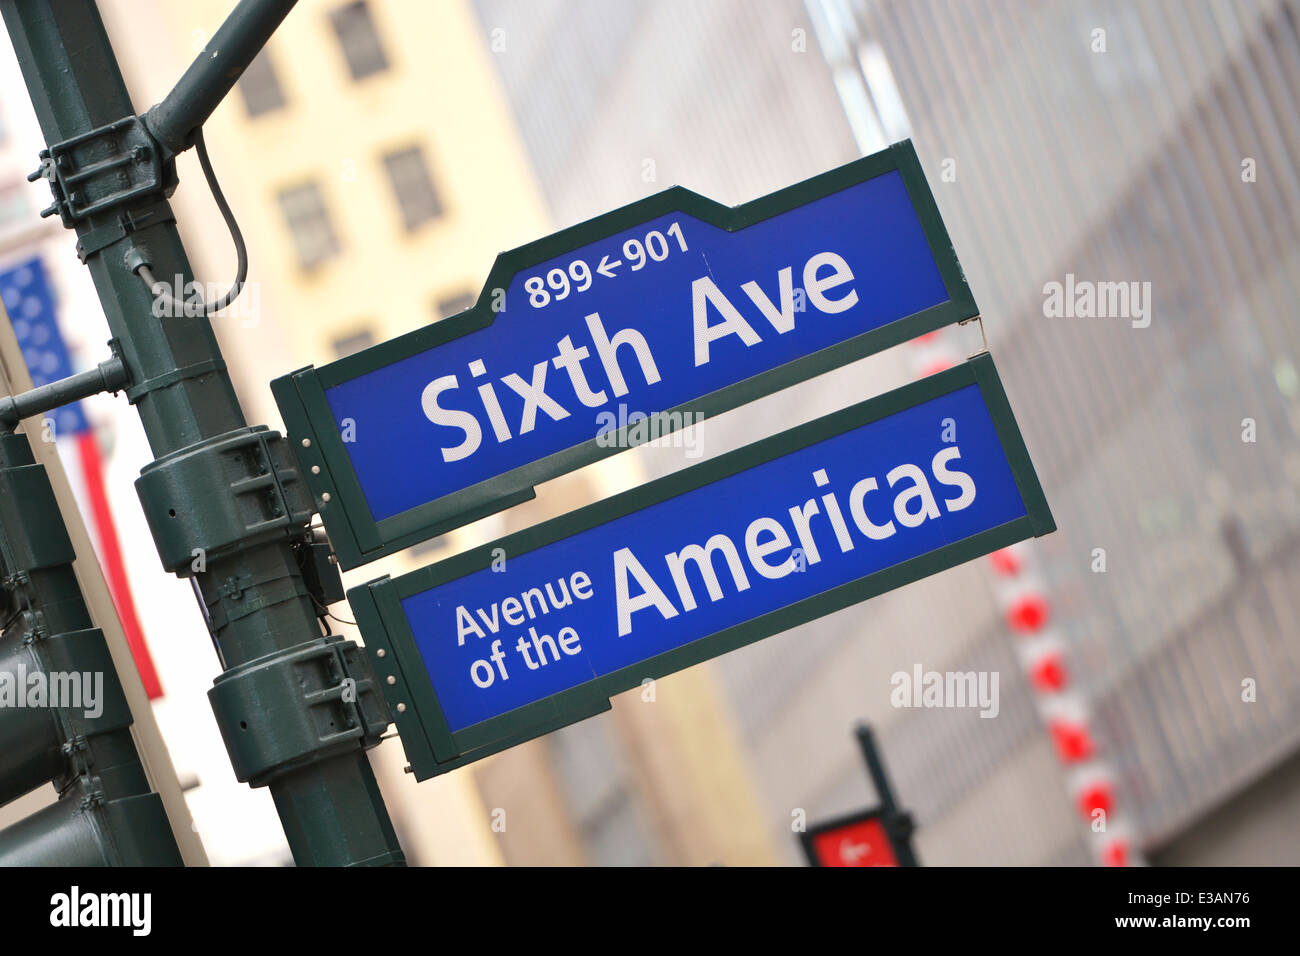 Sixth Ave Avenue, Street Sign, Road Signs, New York, NY - Stock Image